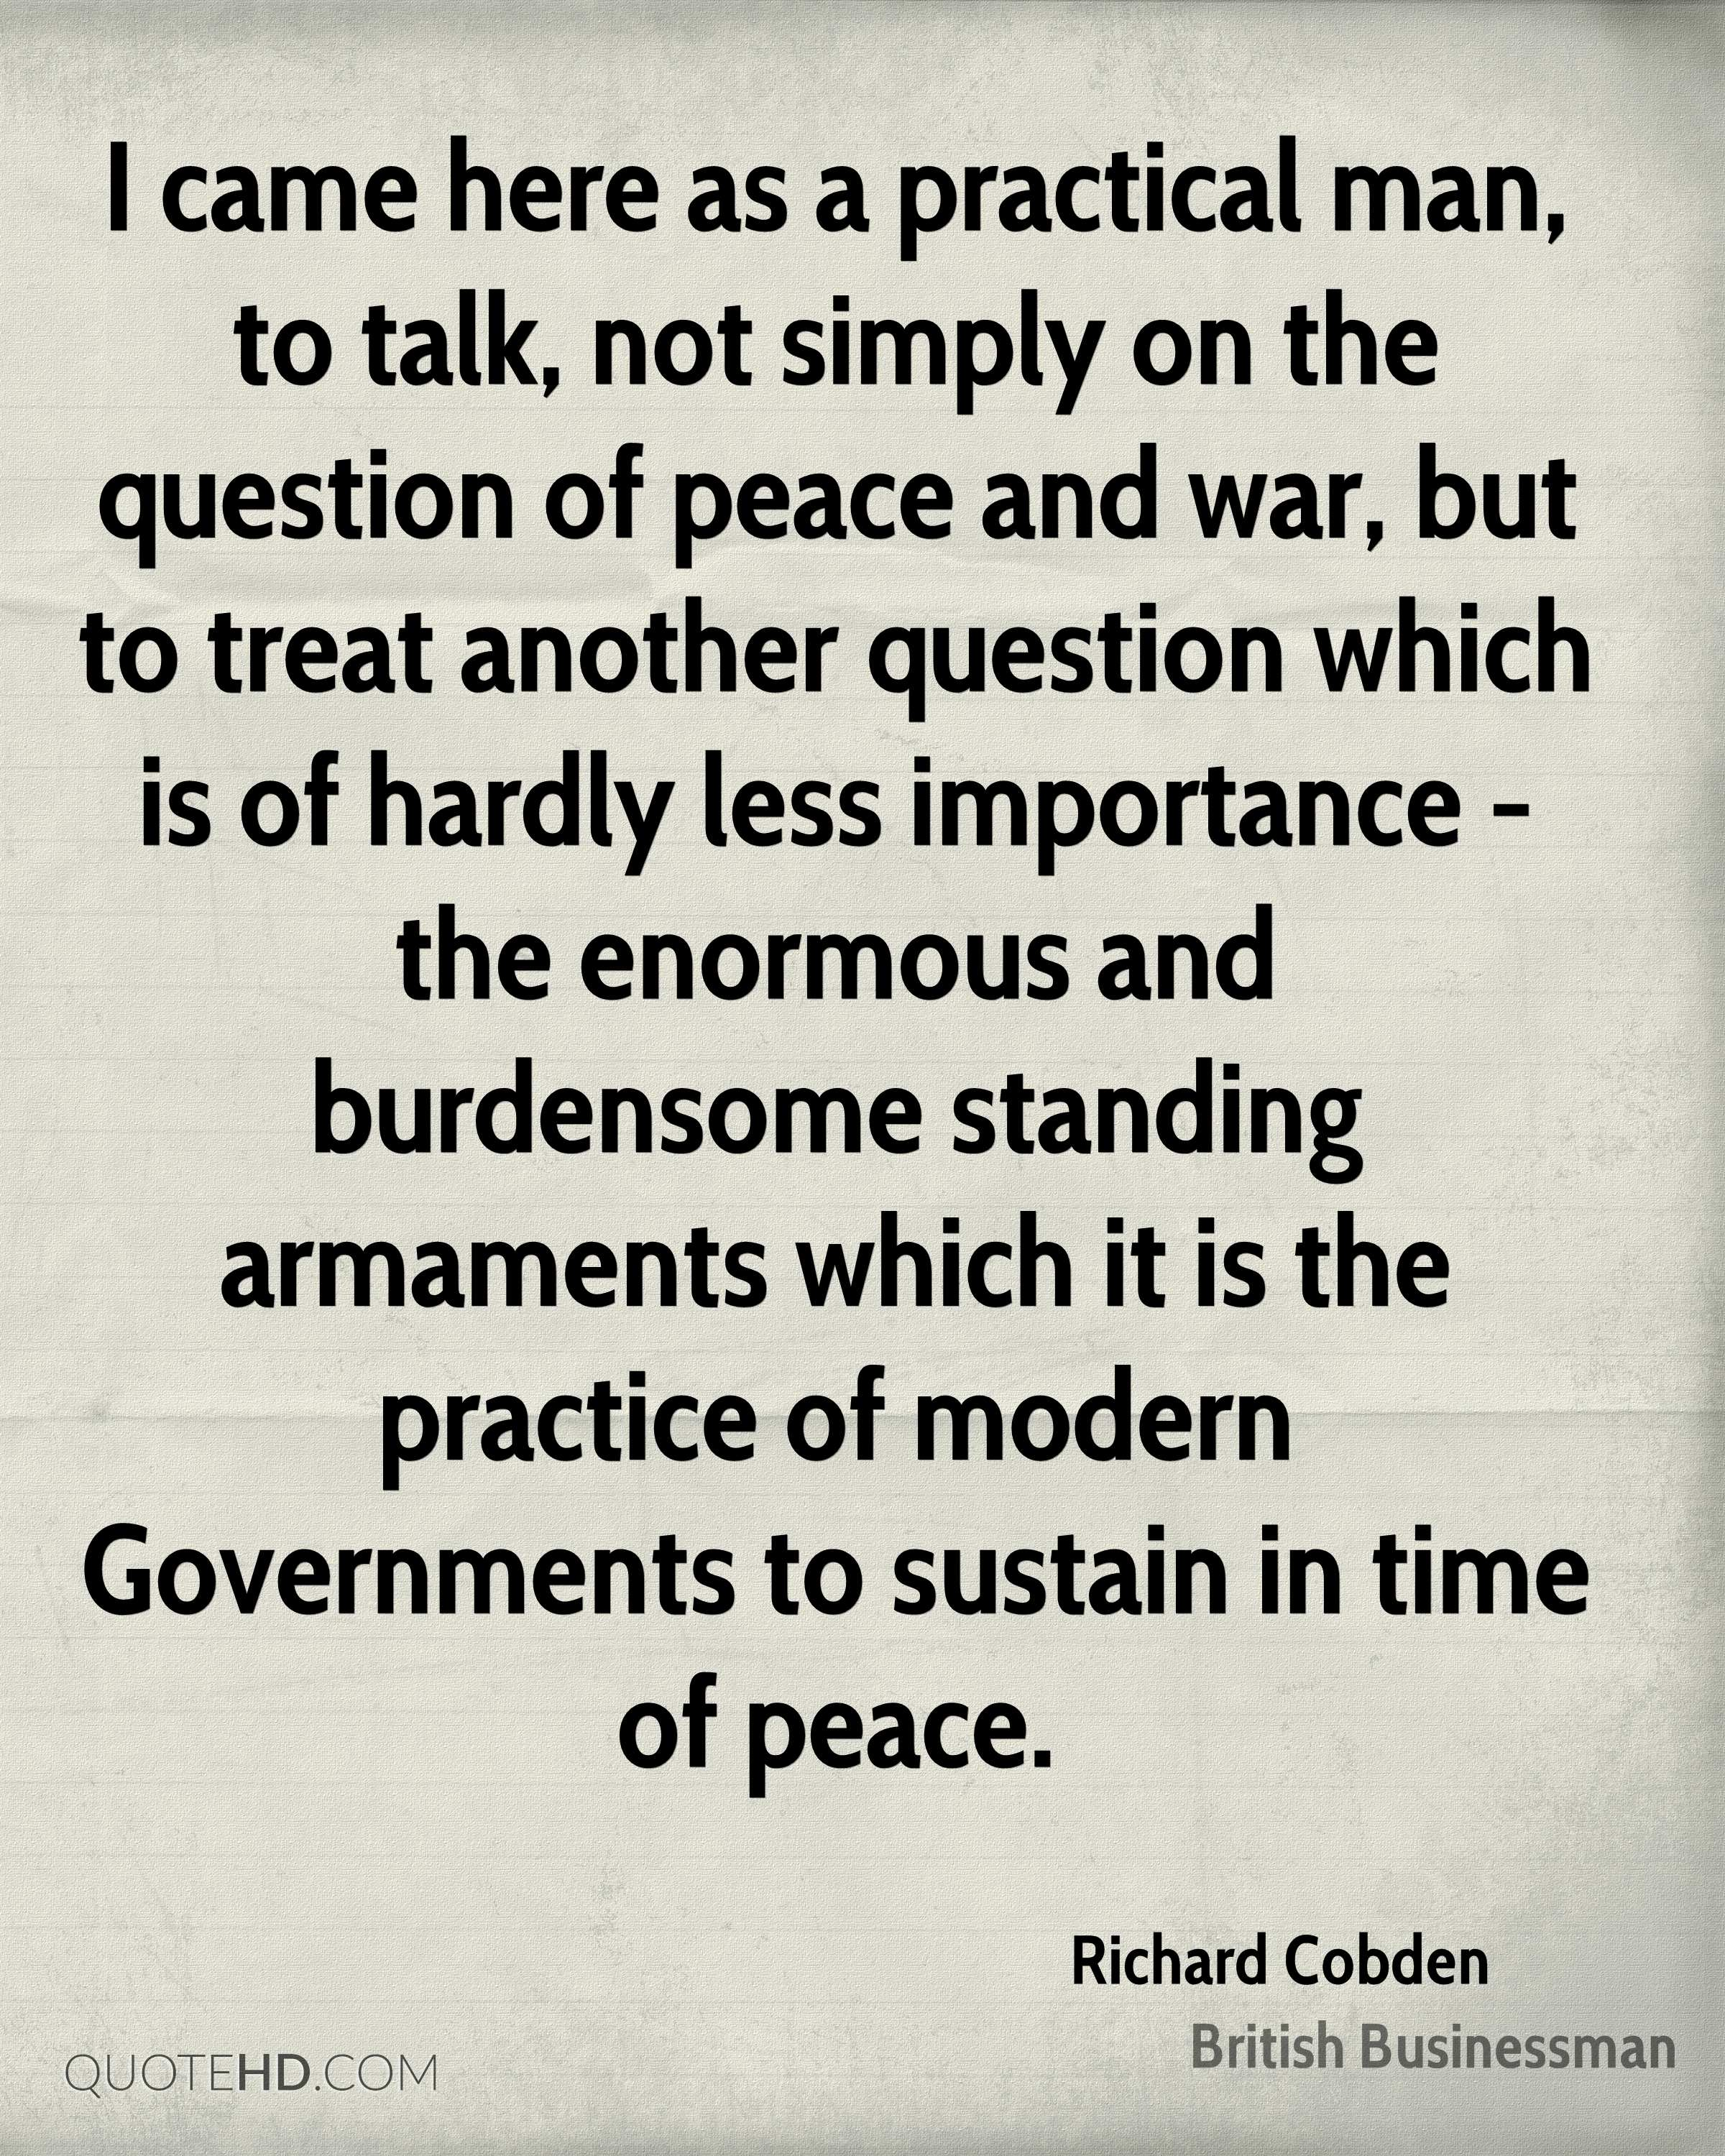 I came here as a practical man, to talk, not simply on the question of peace and war, but to treat another question which is of hardly less importance - the enormous and burdensome standing armaments which it is the practice of modern Governments to sustain in time of peace.